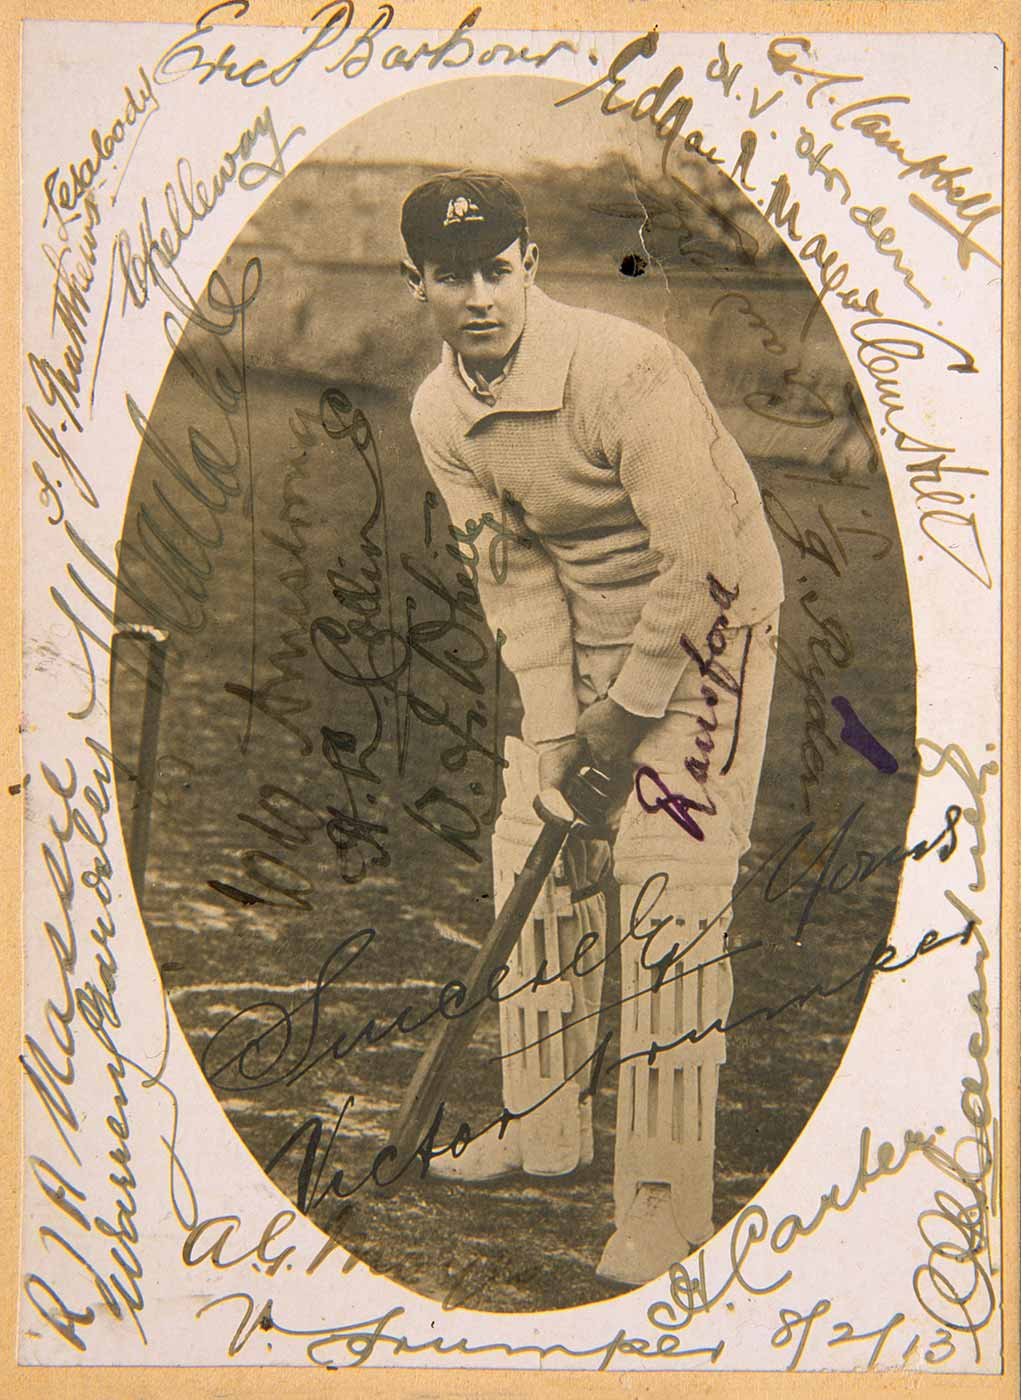 An autographed photo of Victor Trumper.